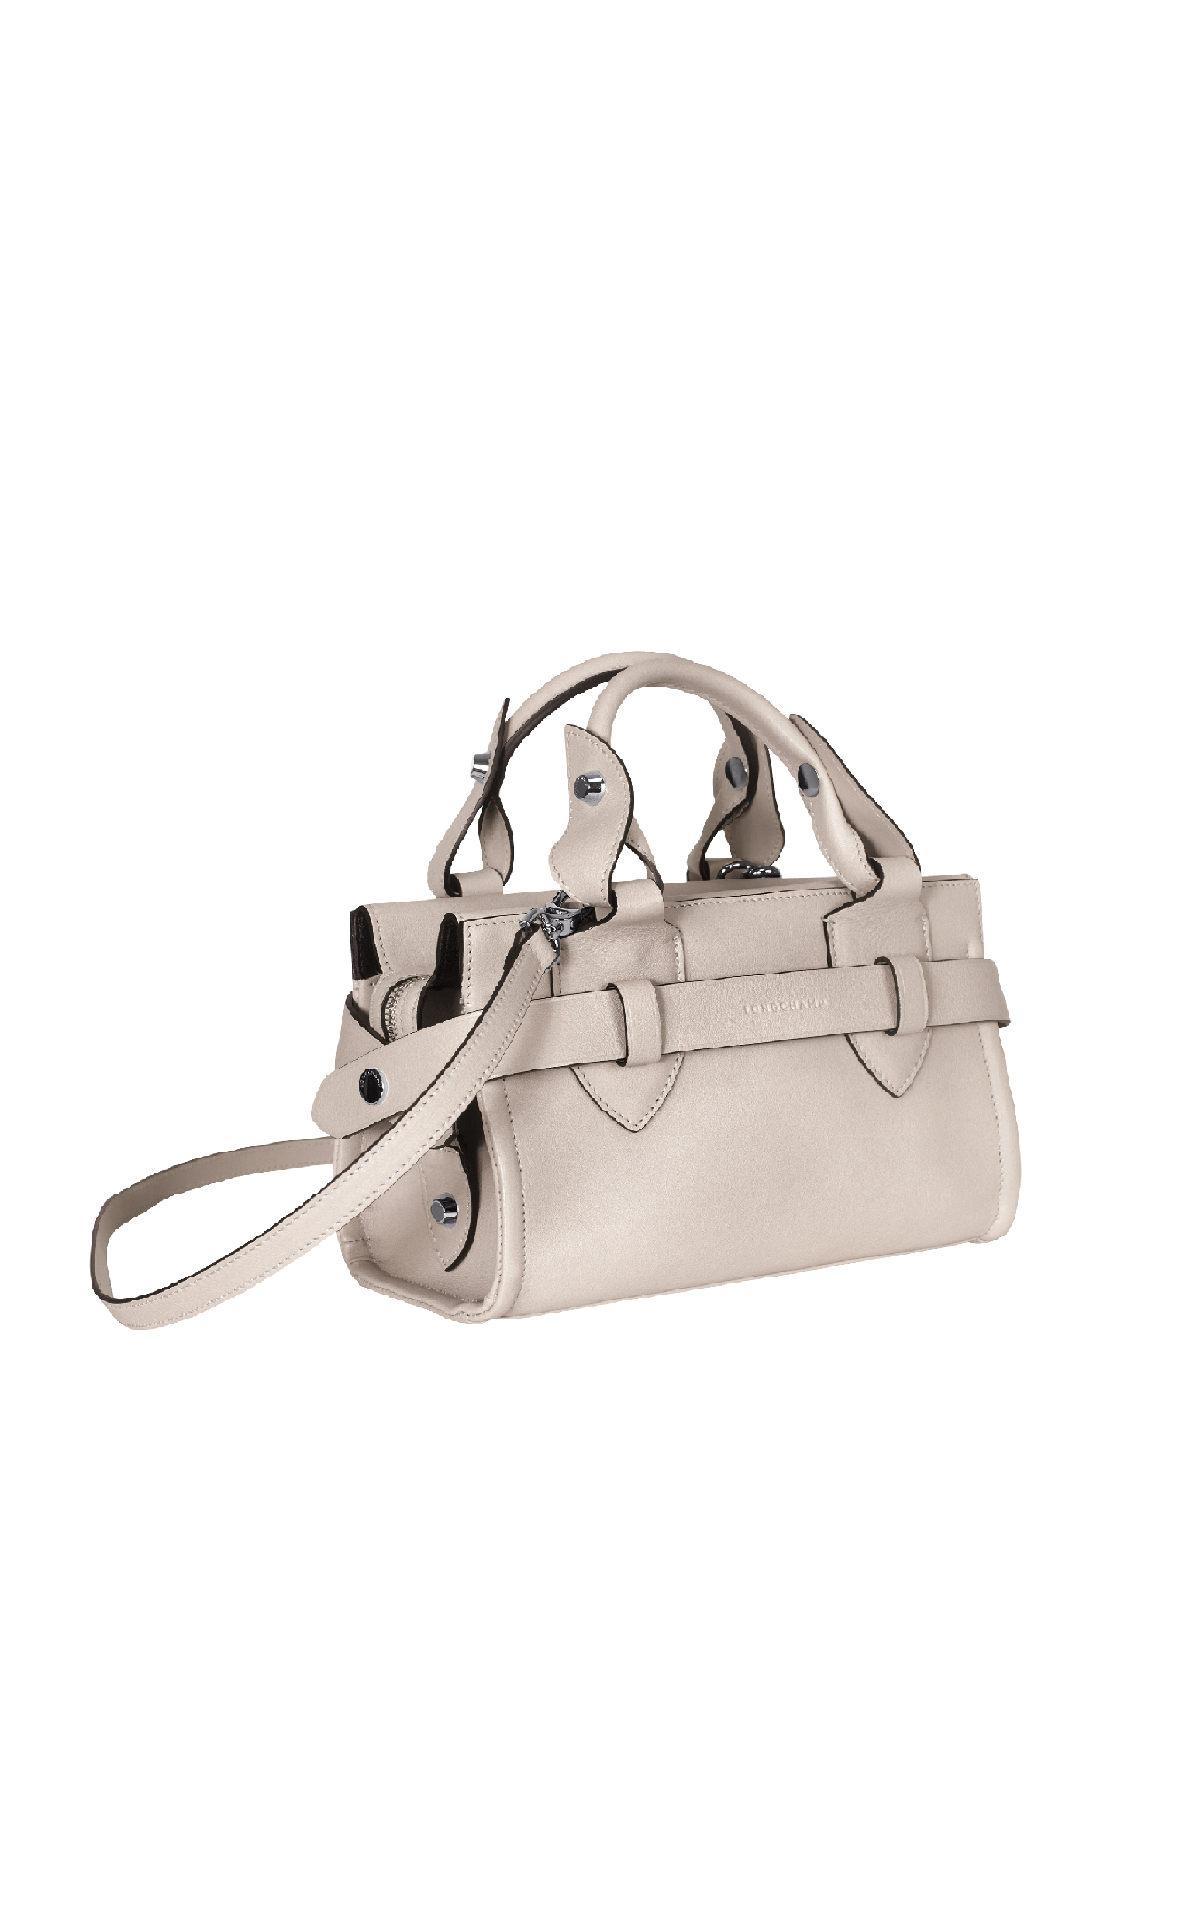 White leather bag Longchamp